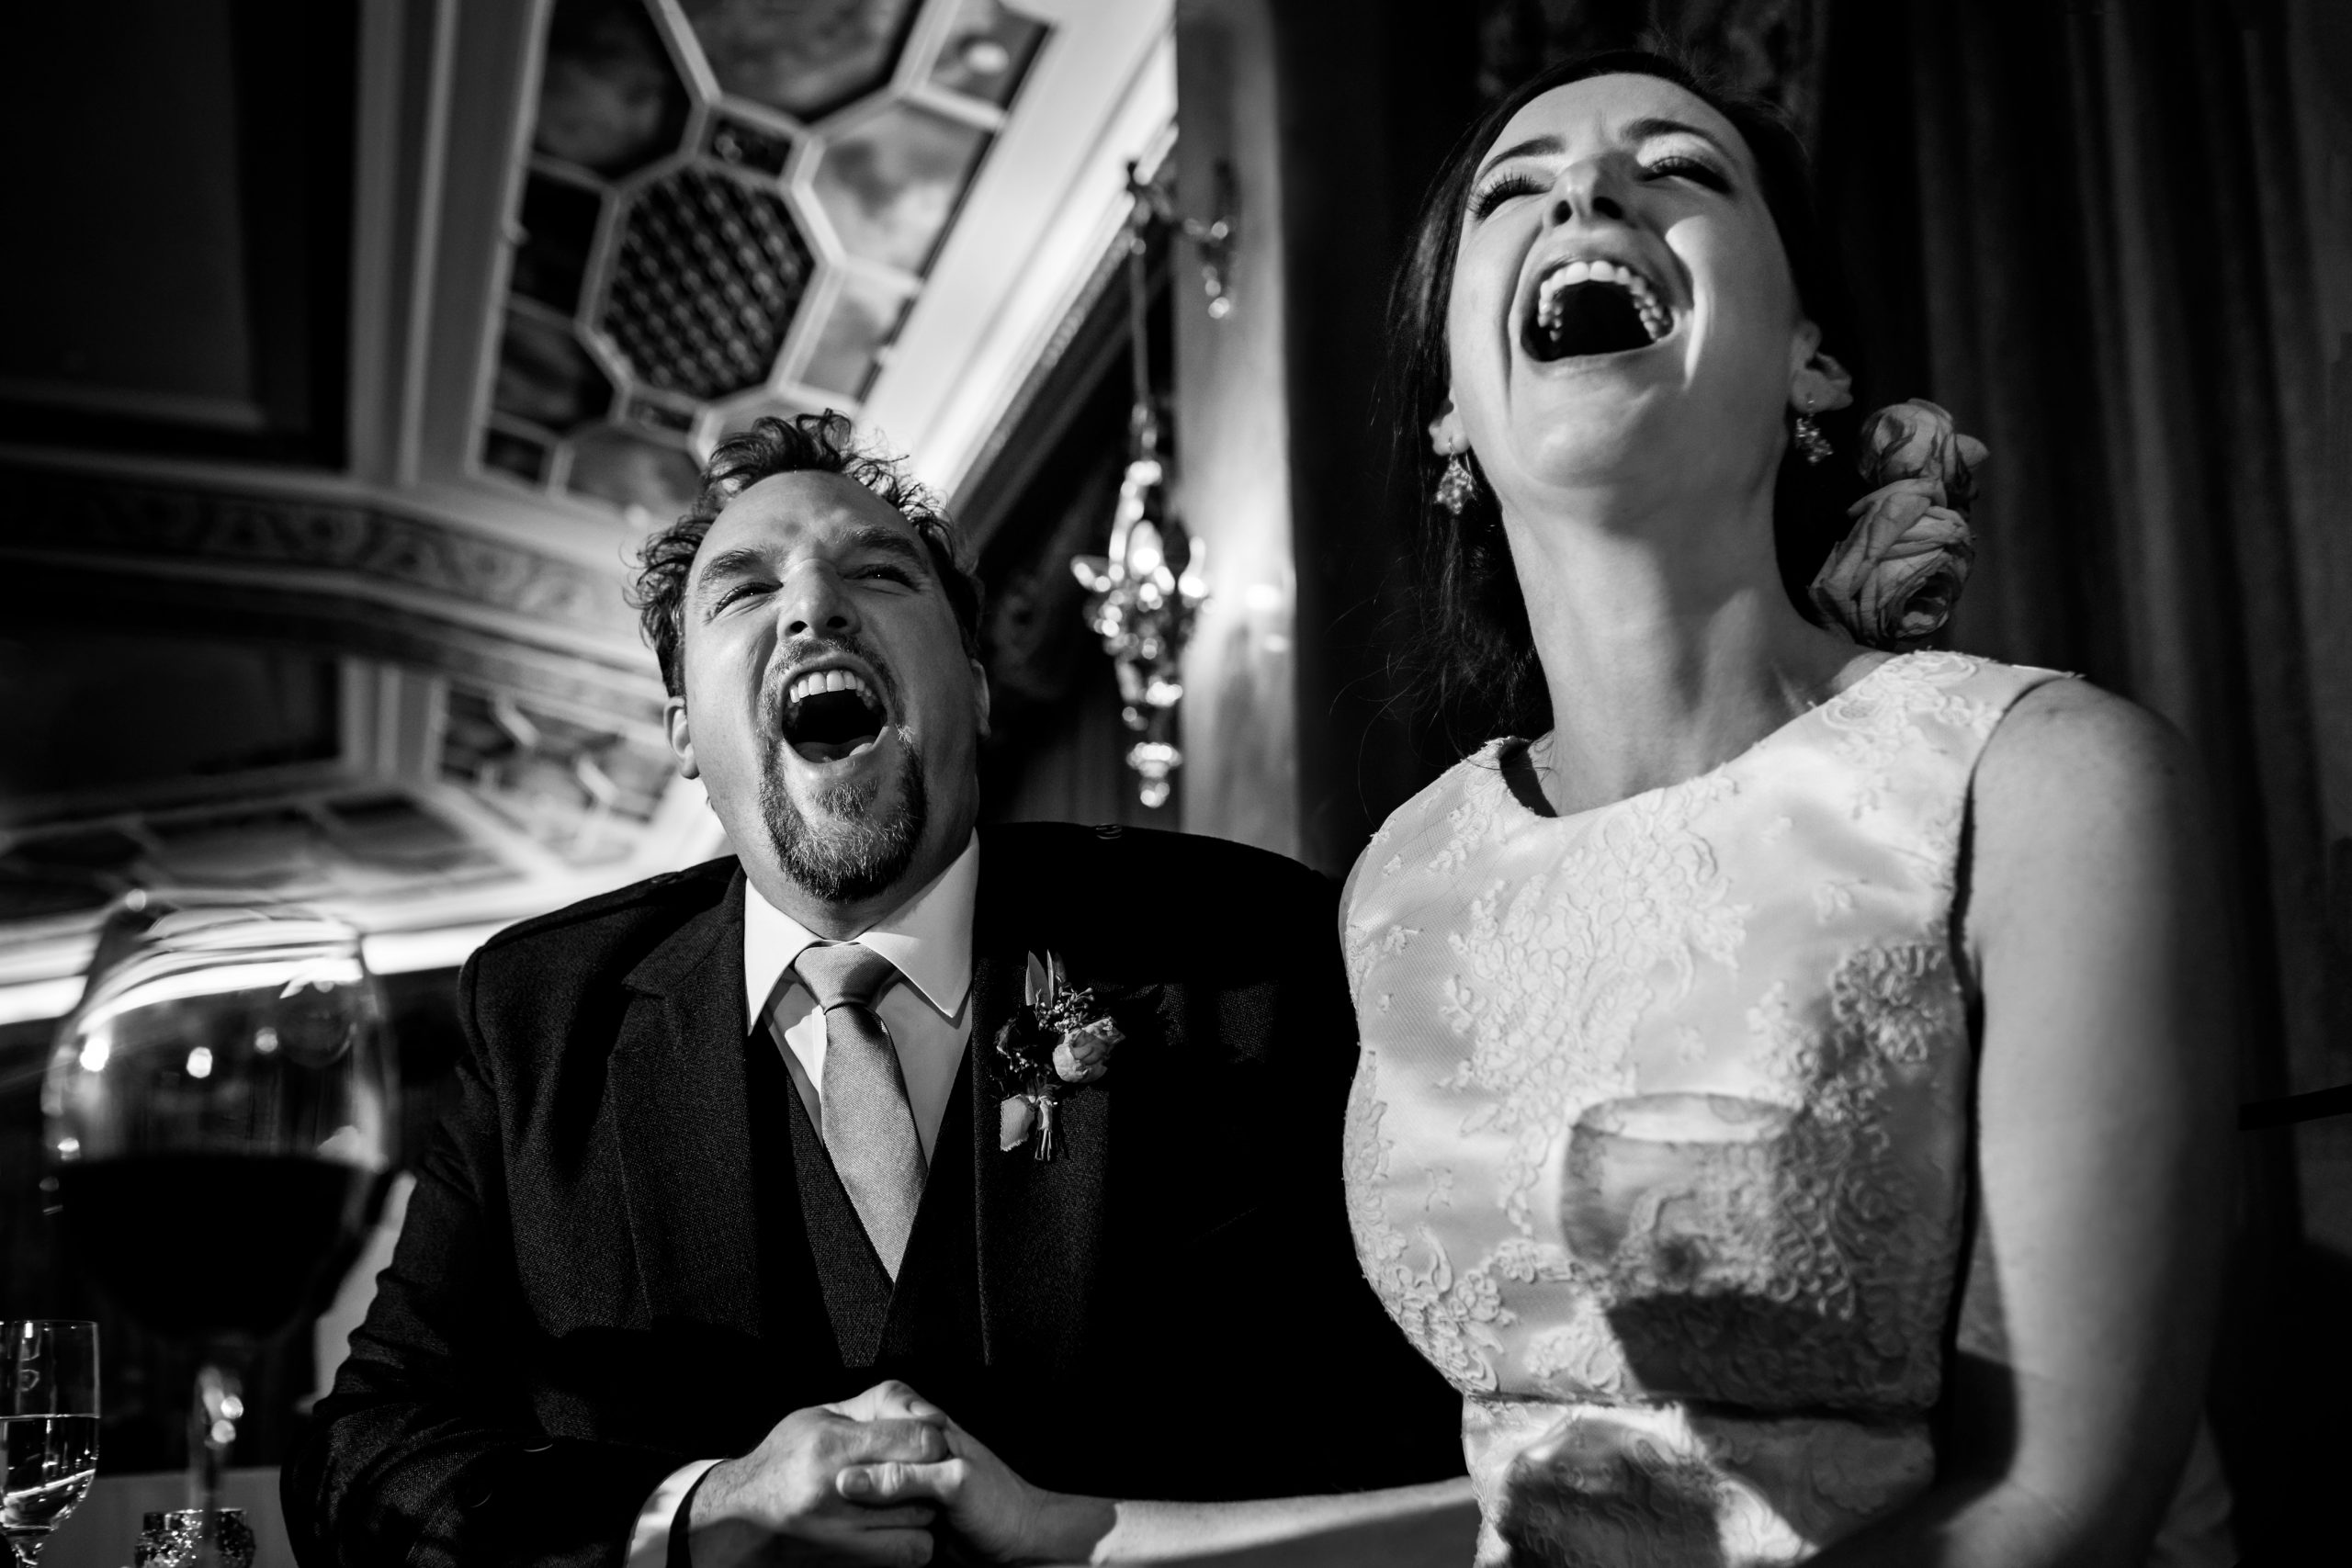 Laughing bride and groom at wedding reception